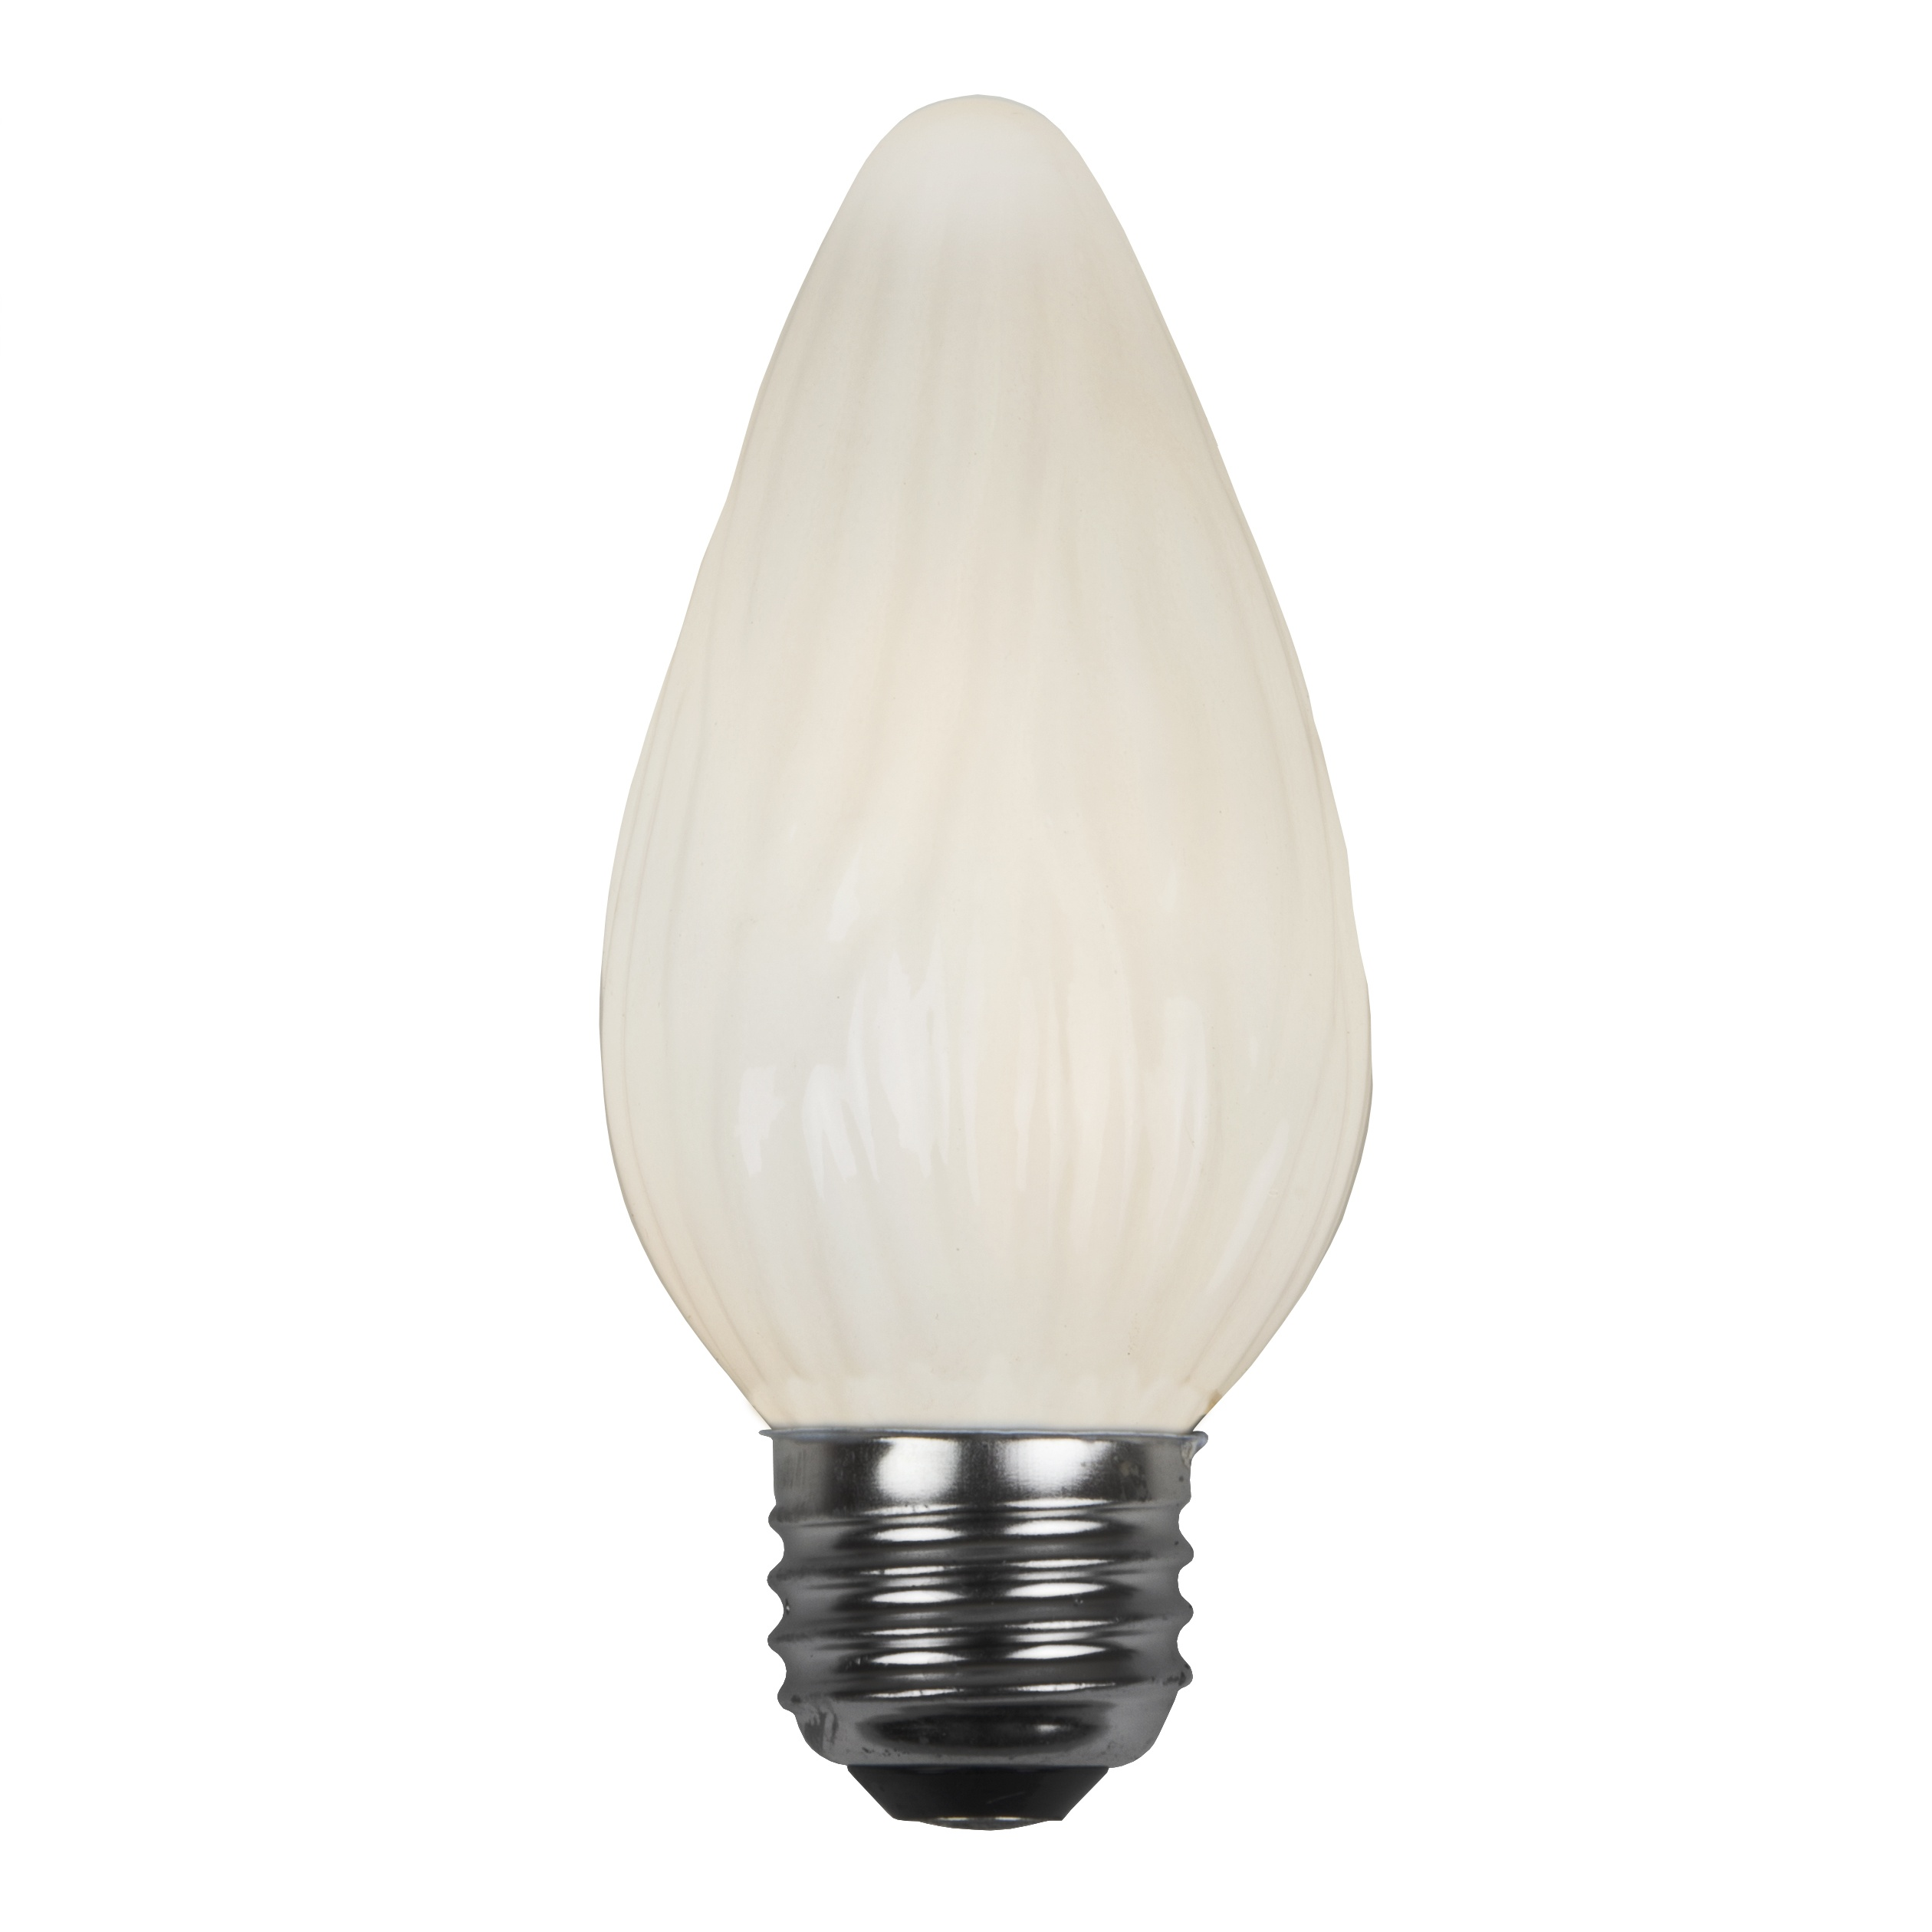 F15 Opaque White Flame Replacement Bulb E26 Base